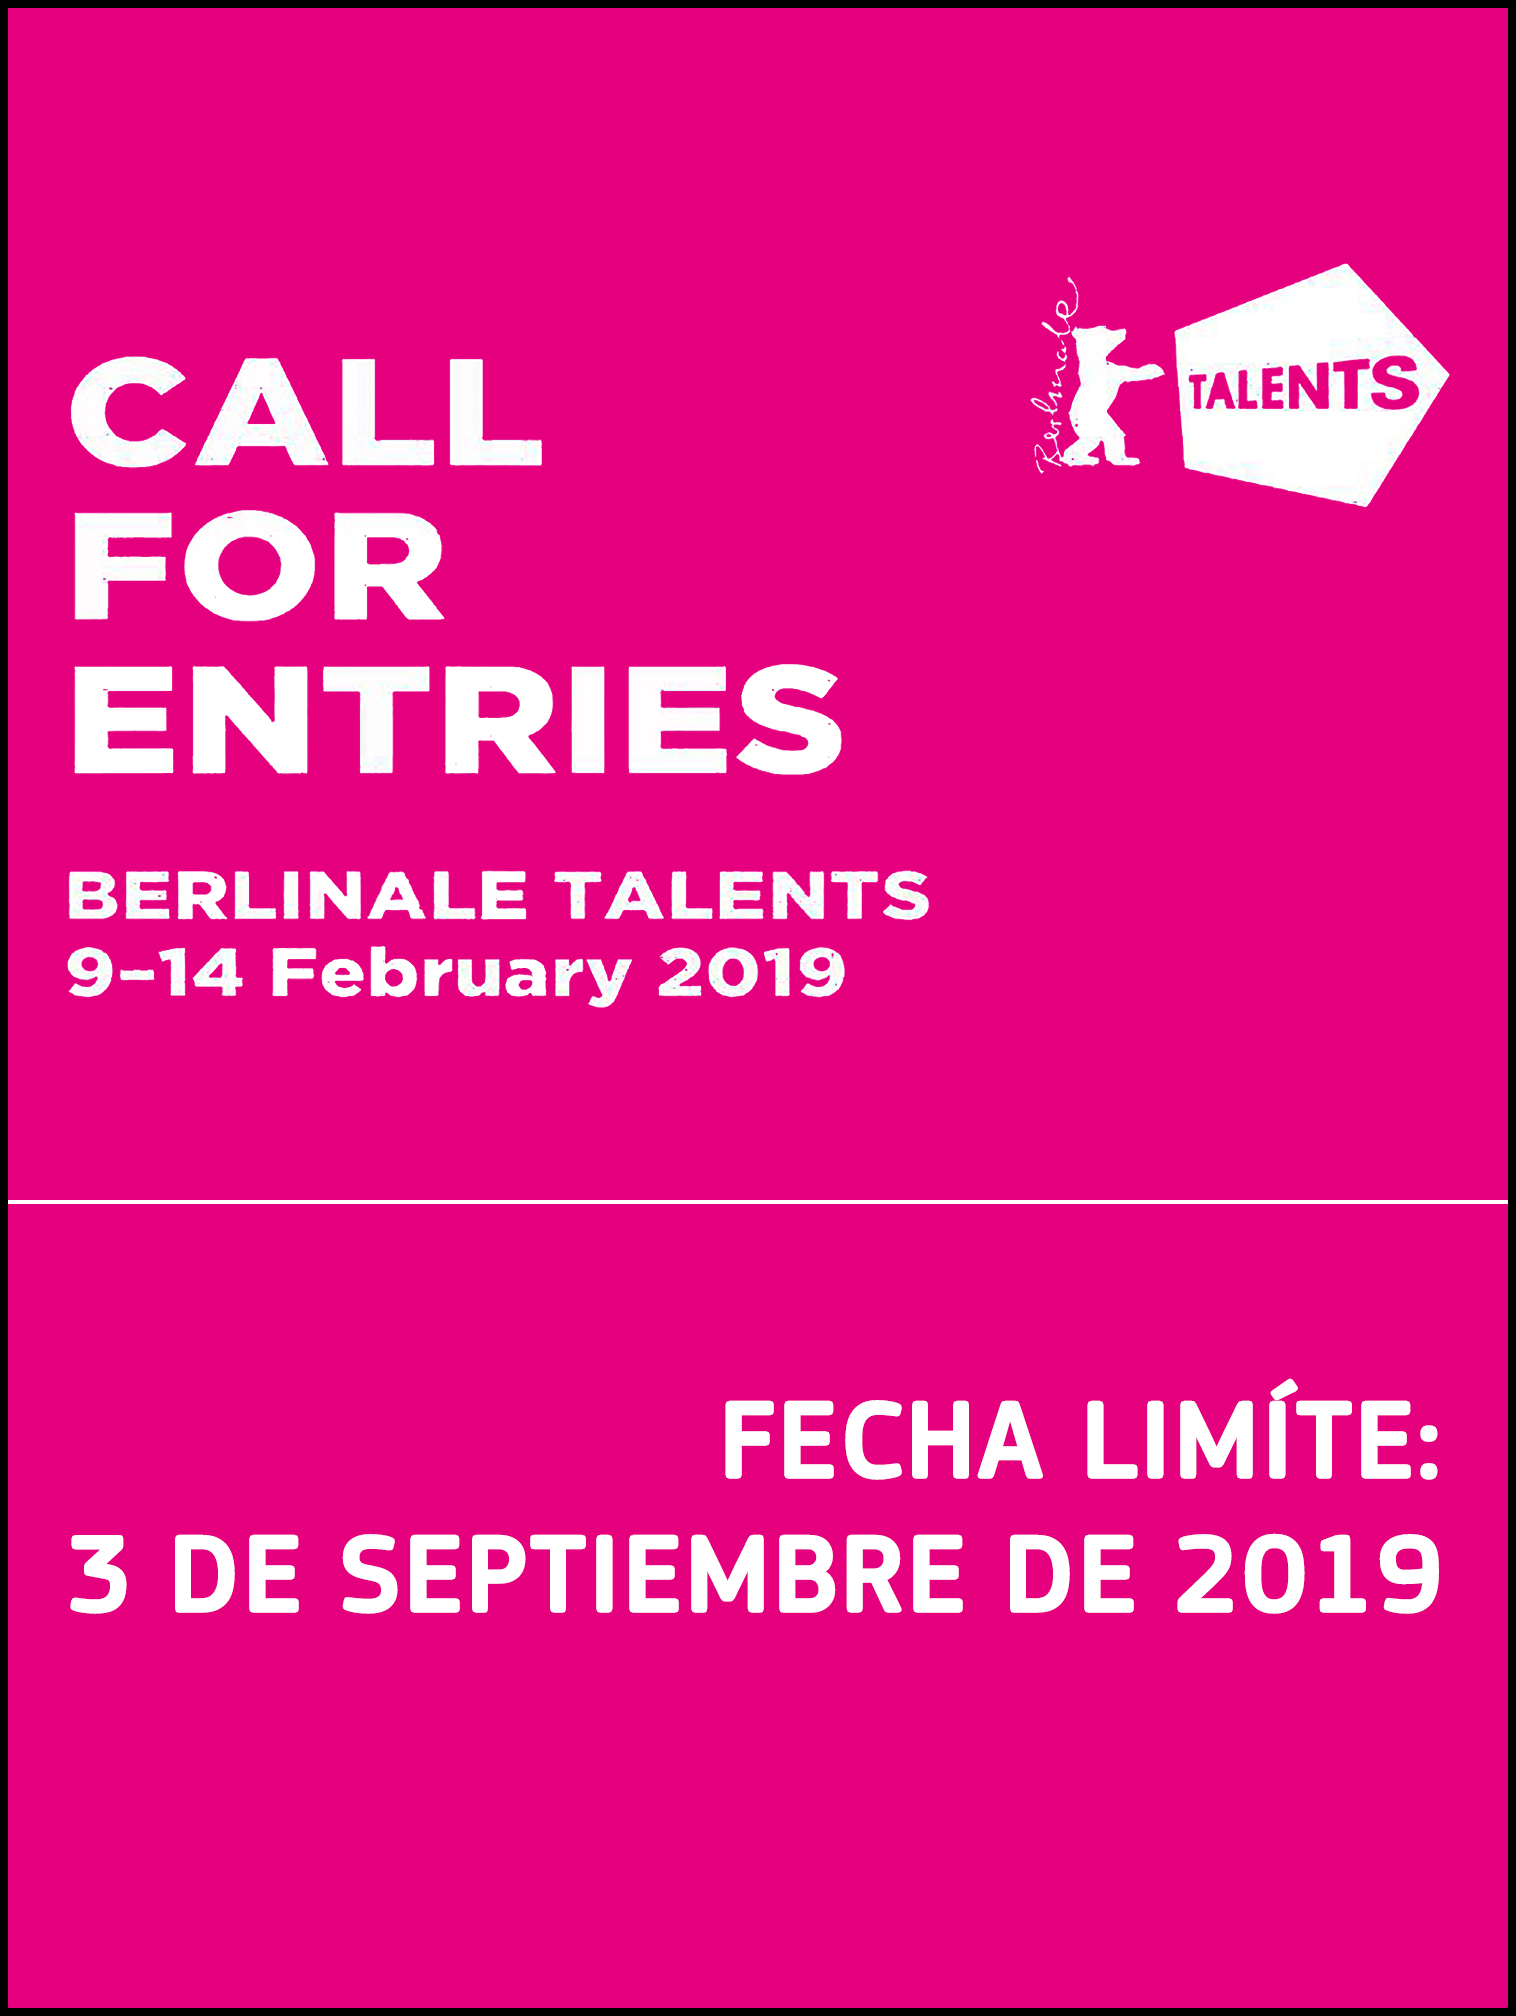 Berlinale Talents Call for entry interiorboder